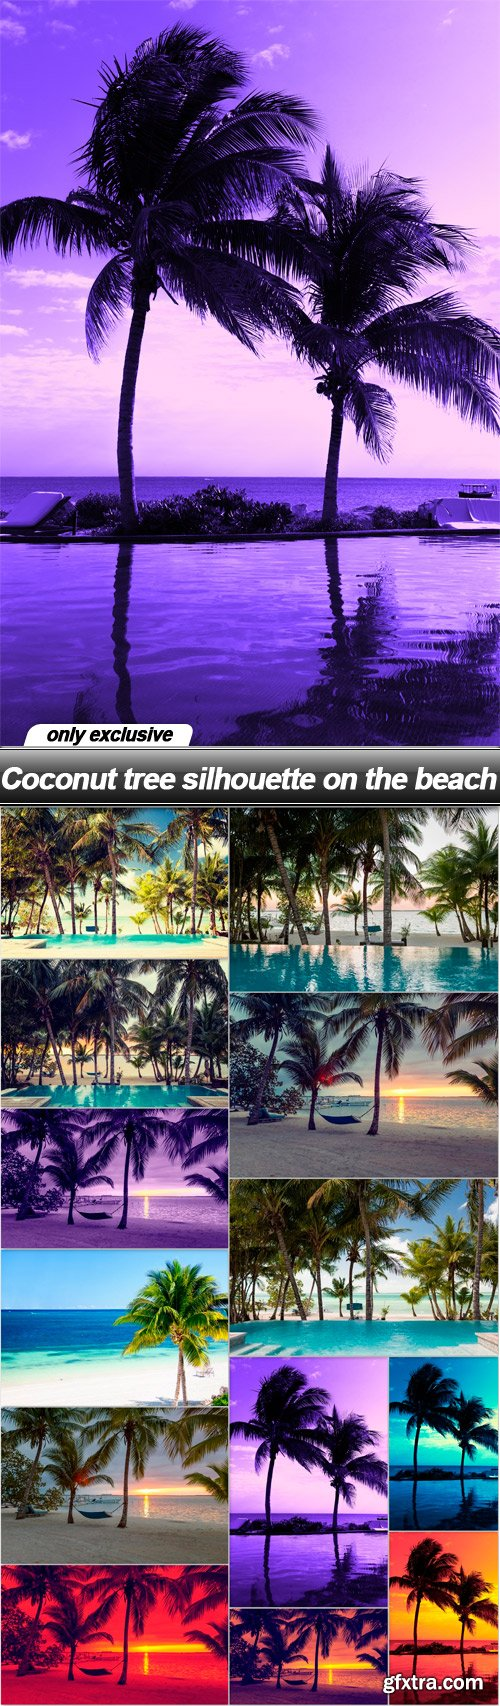 Coconut tree silhouette on the beach - 13 UHQ JPEG